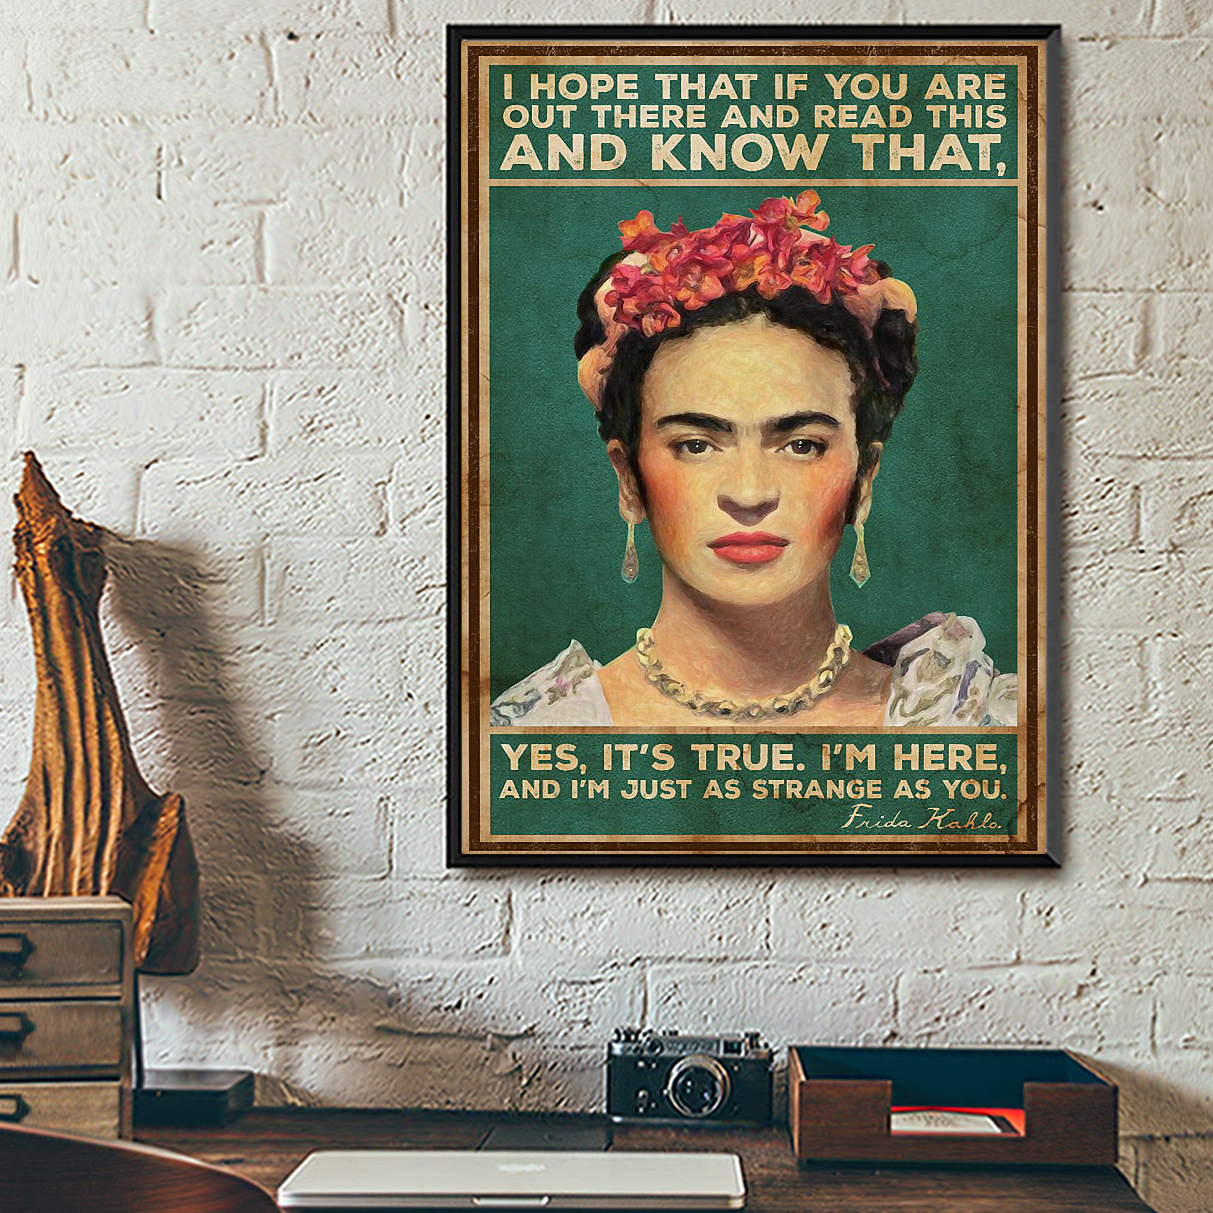 Frida kahlo I hope that if you are out there and read this and know that poster A1